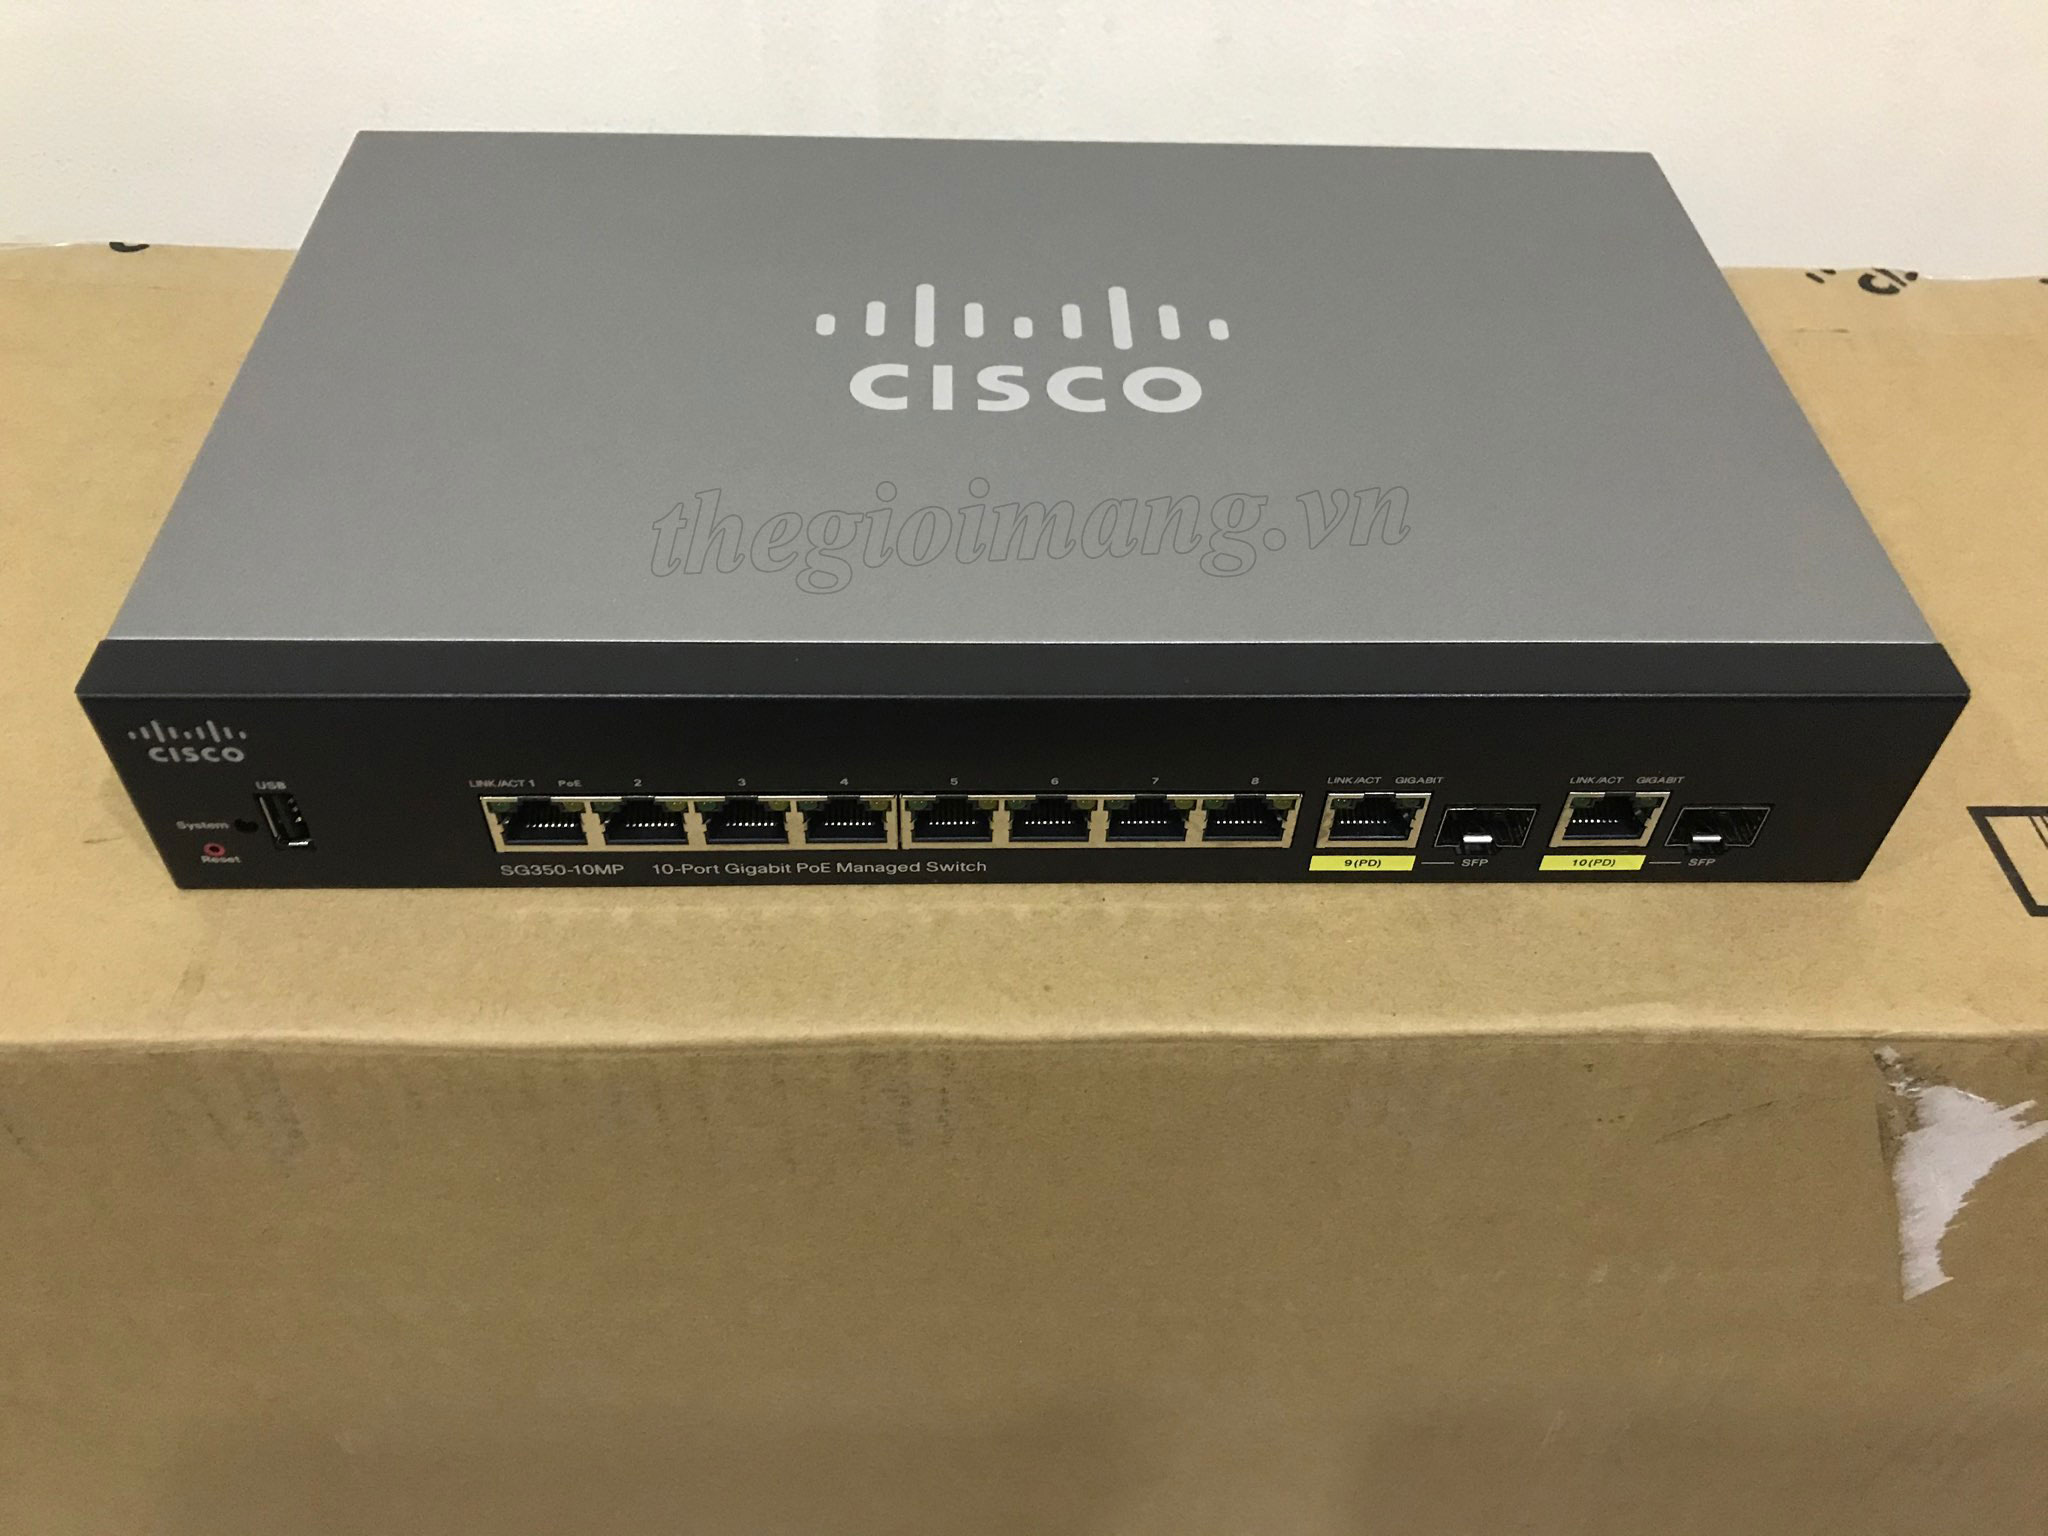 Cisco SG350-10MP-K9-EU